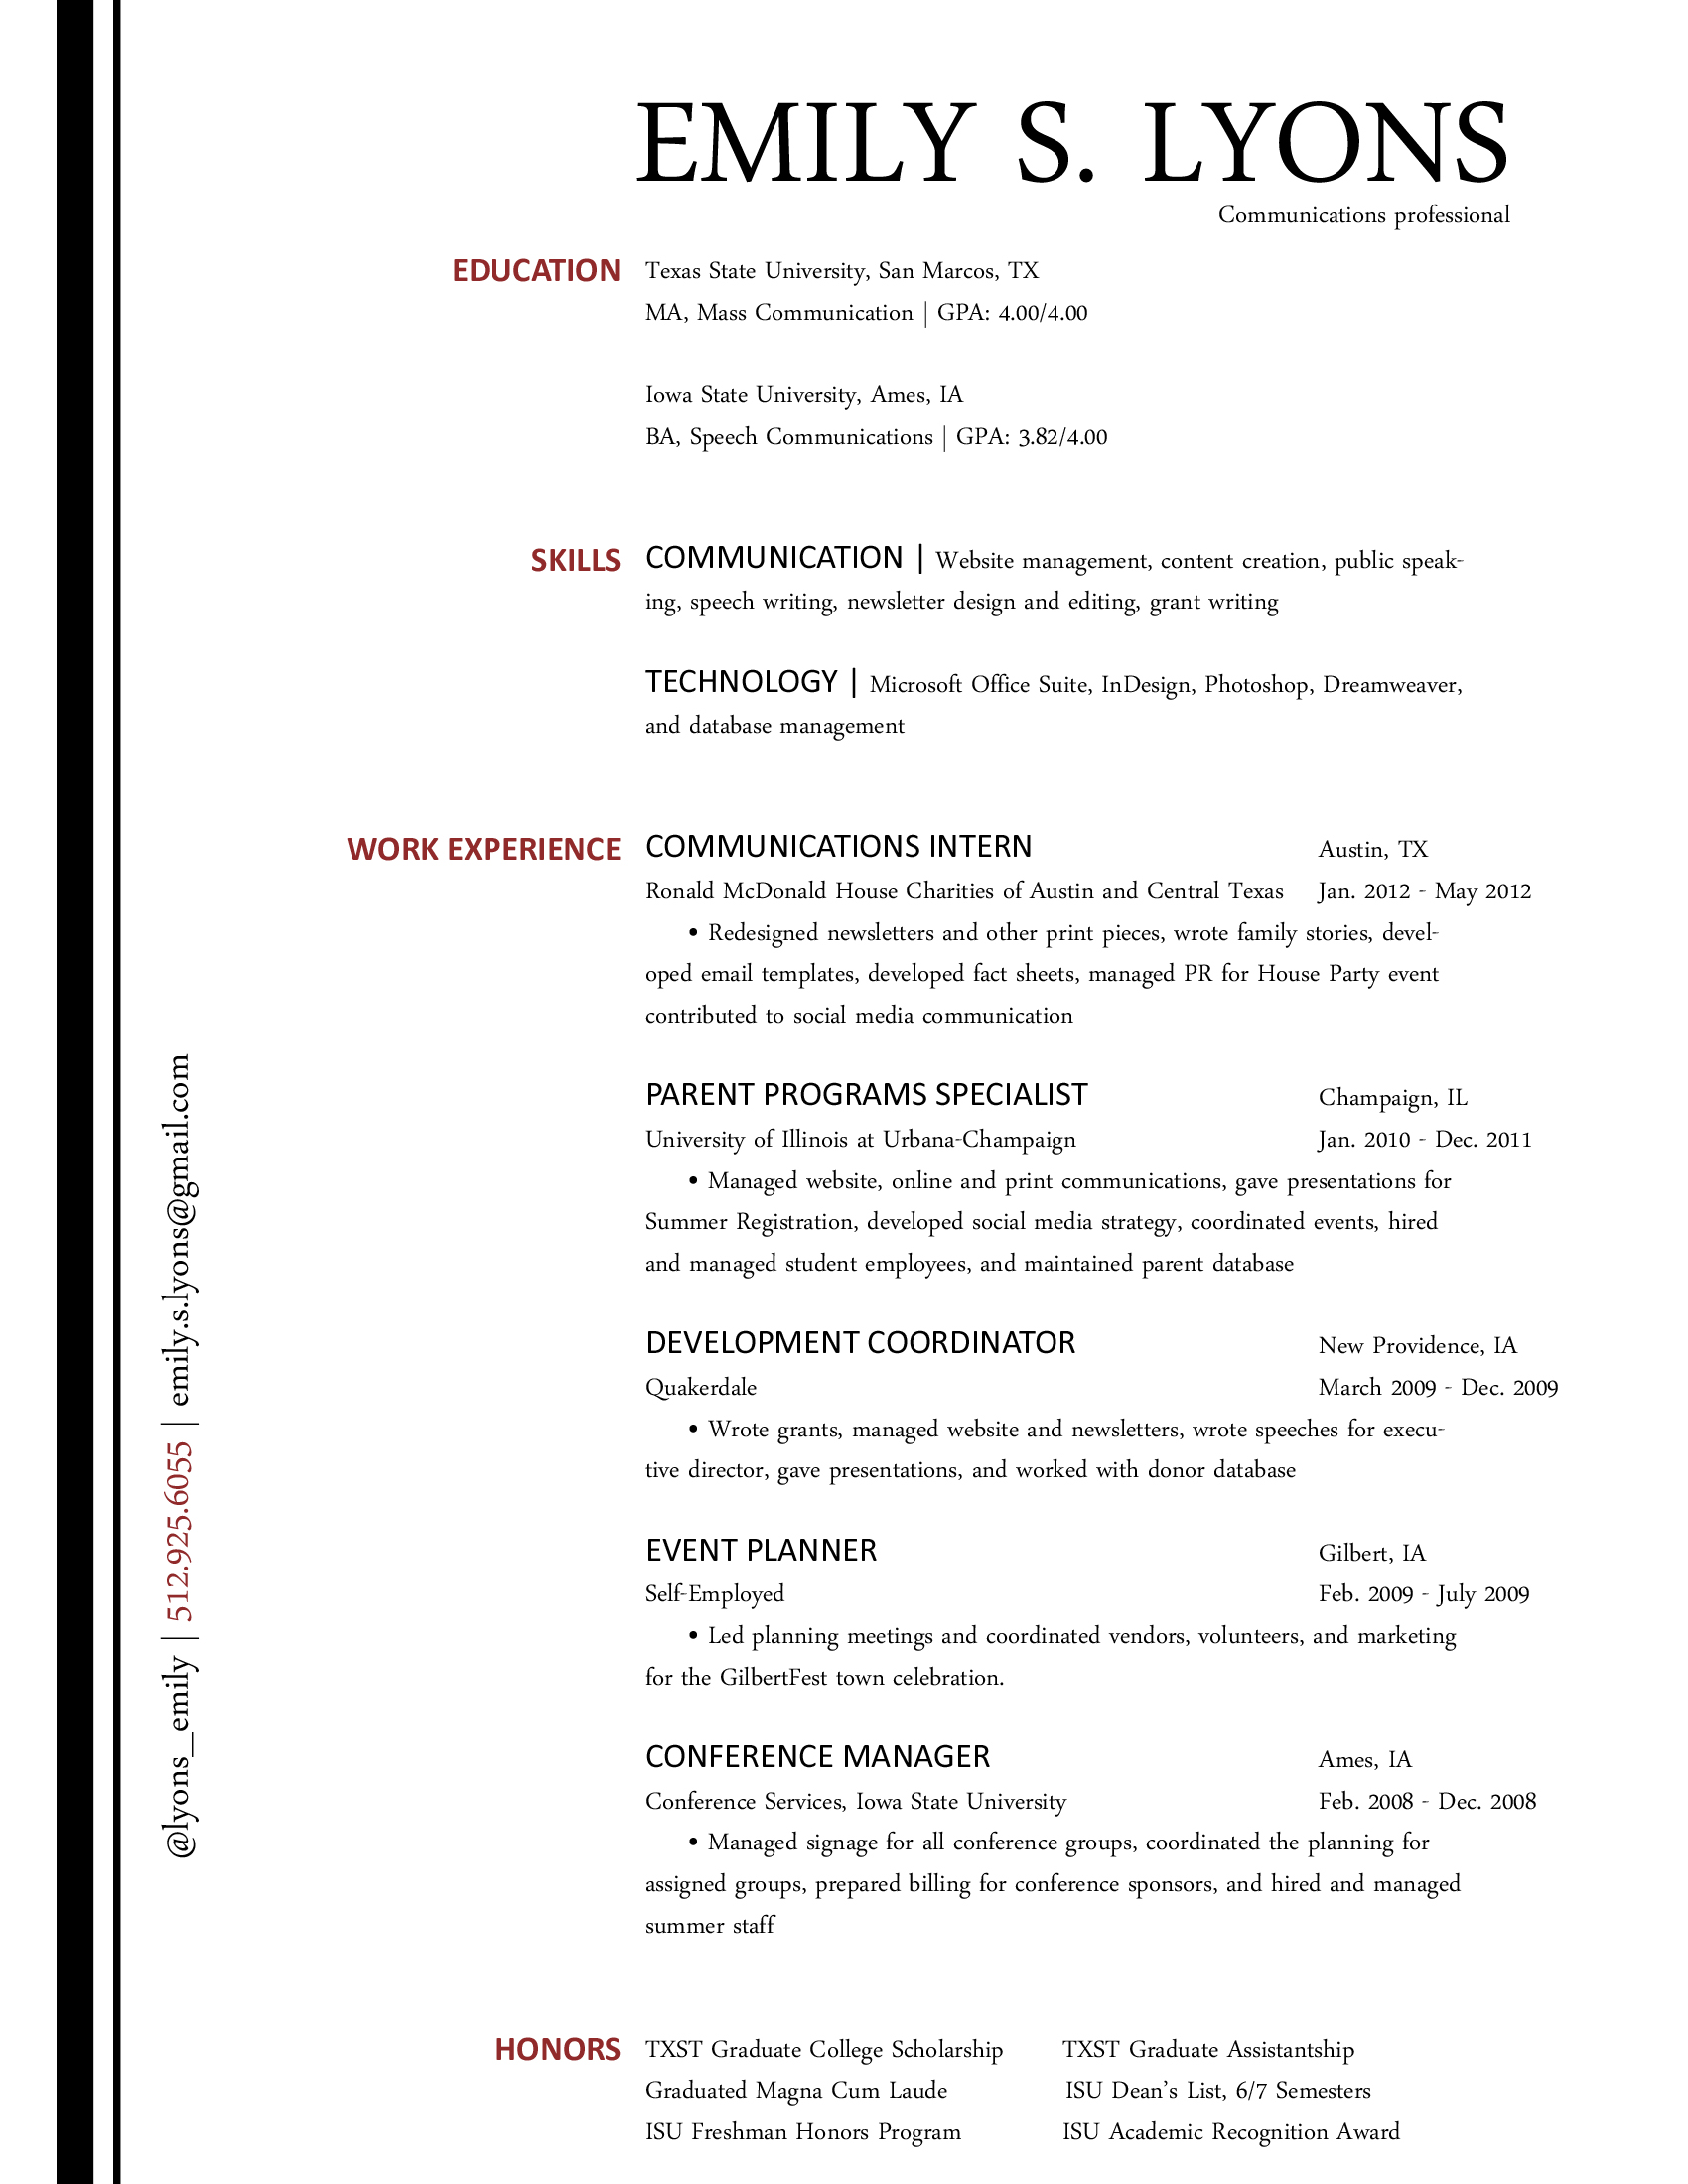 the communications resume